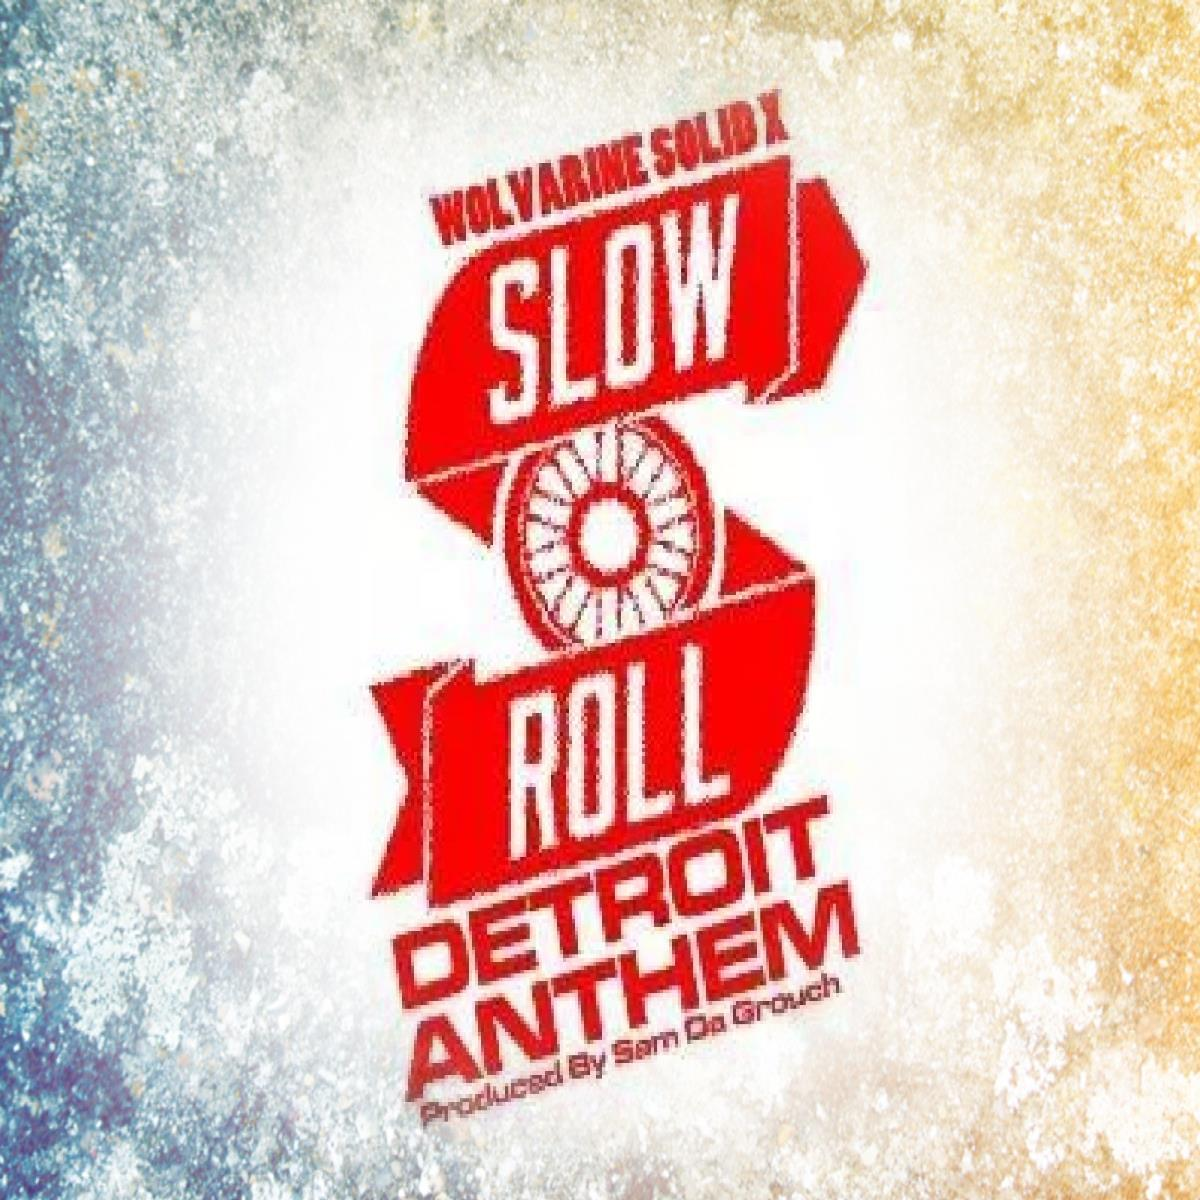 Slow Roll Anthem by Wolvarine Solid X - Produced by Sam Da Grouch